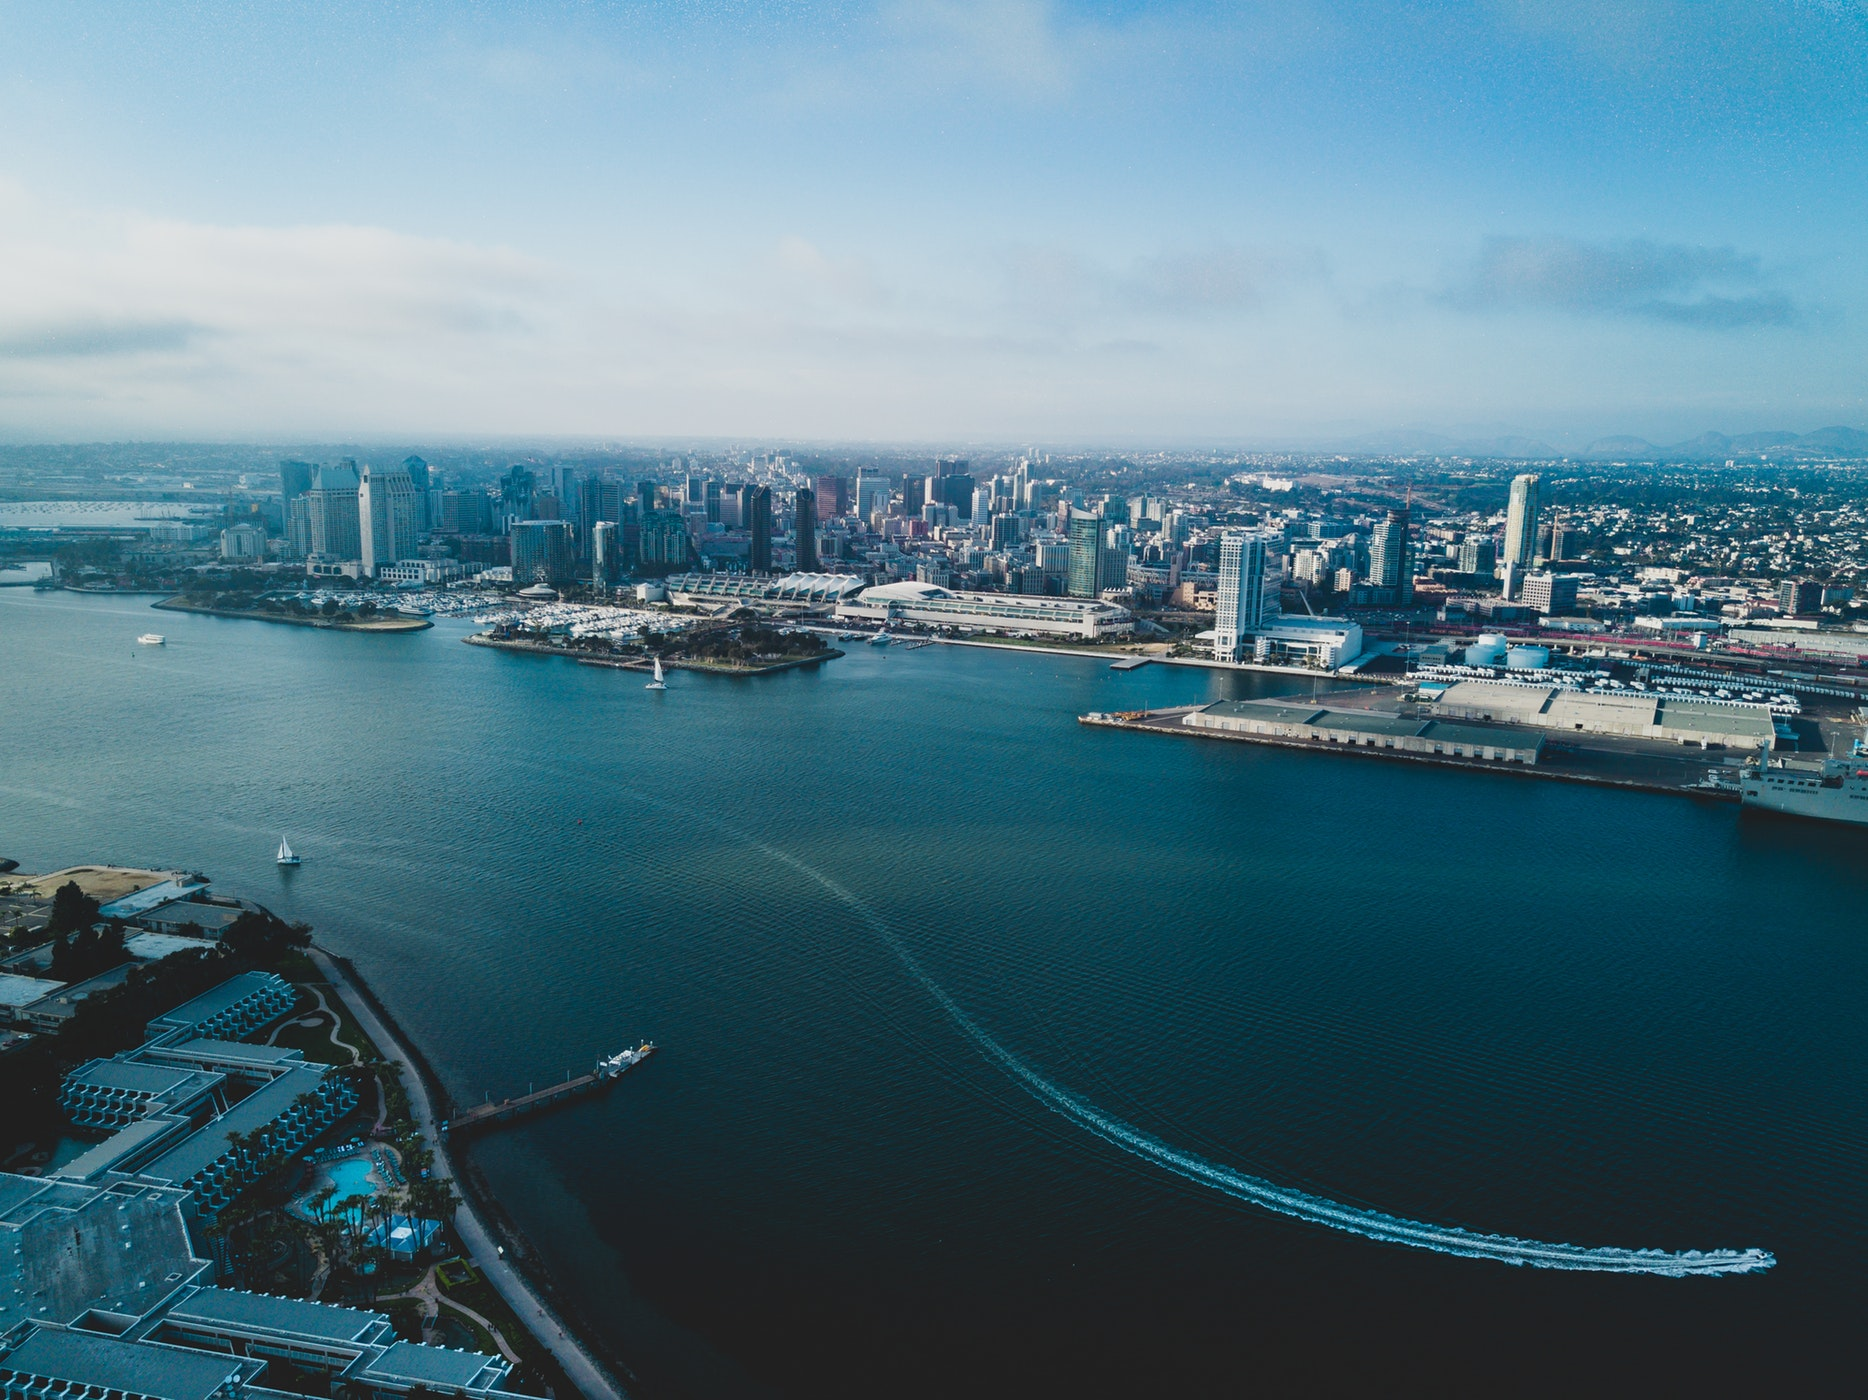 Aerial view of San Diego skyline against harbor